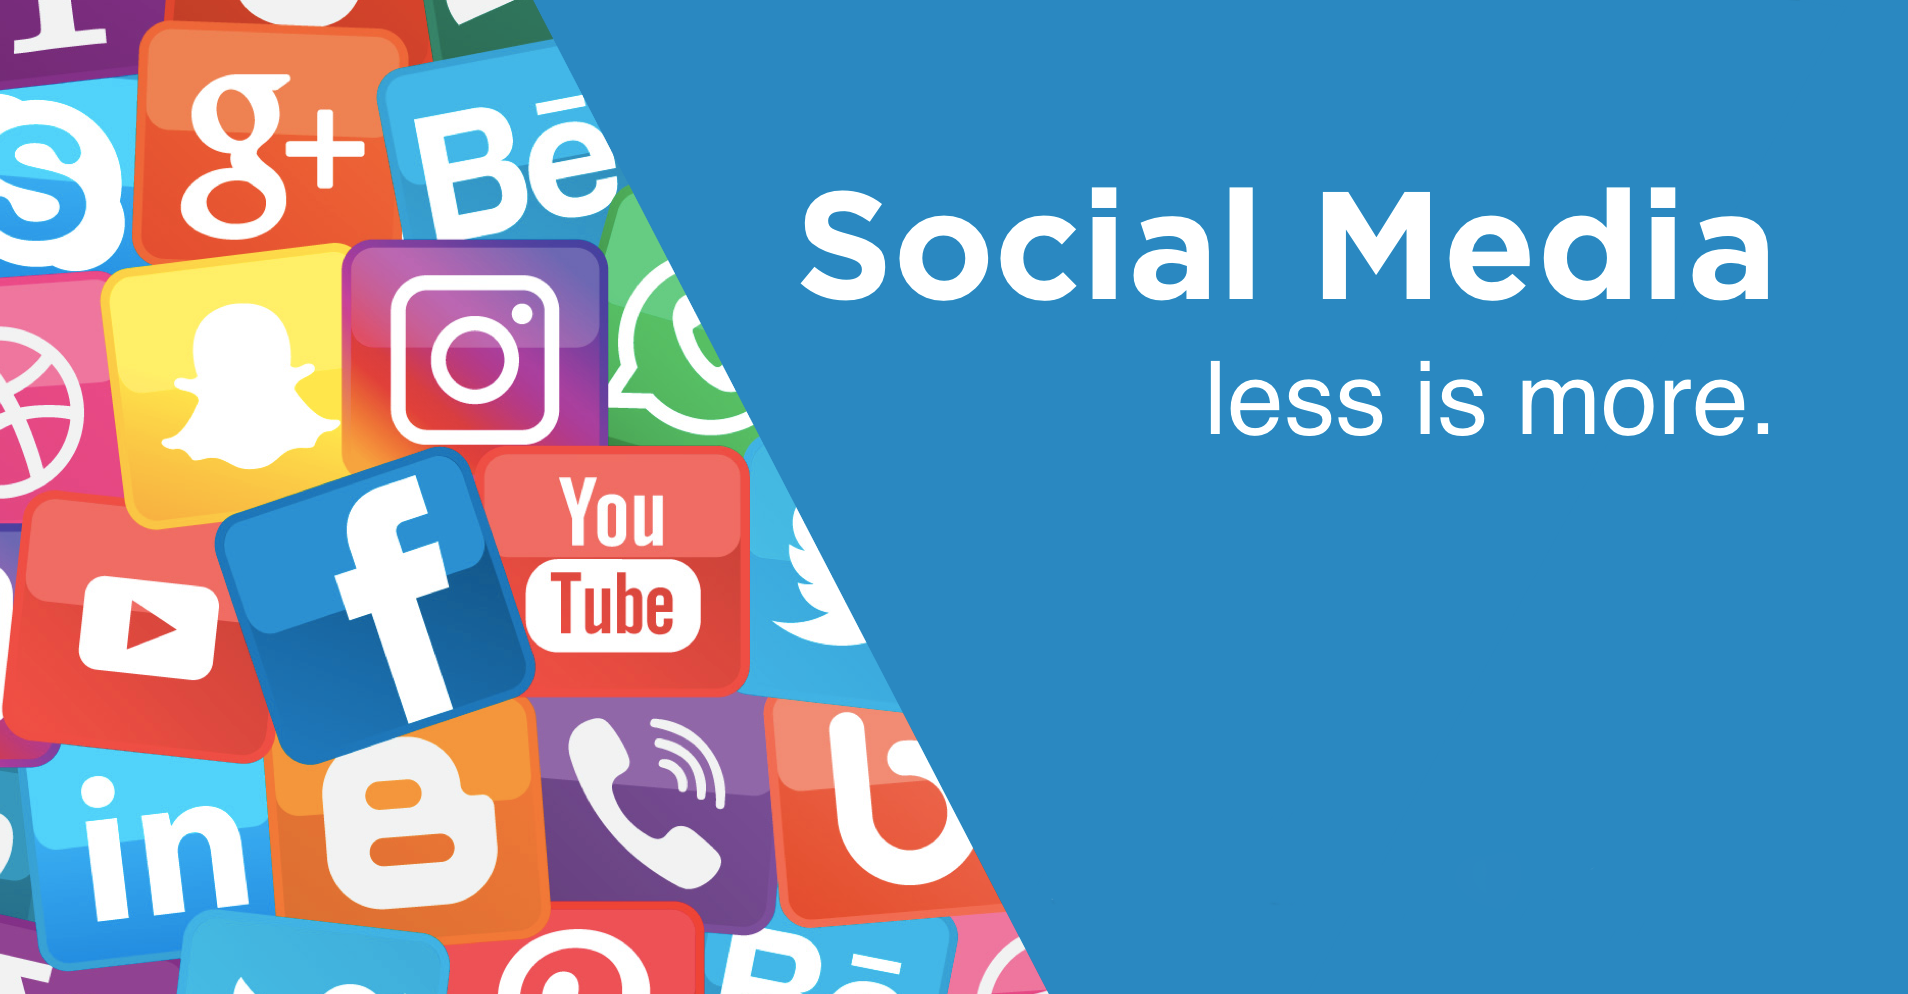 Social media, less is more